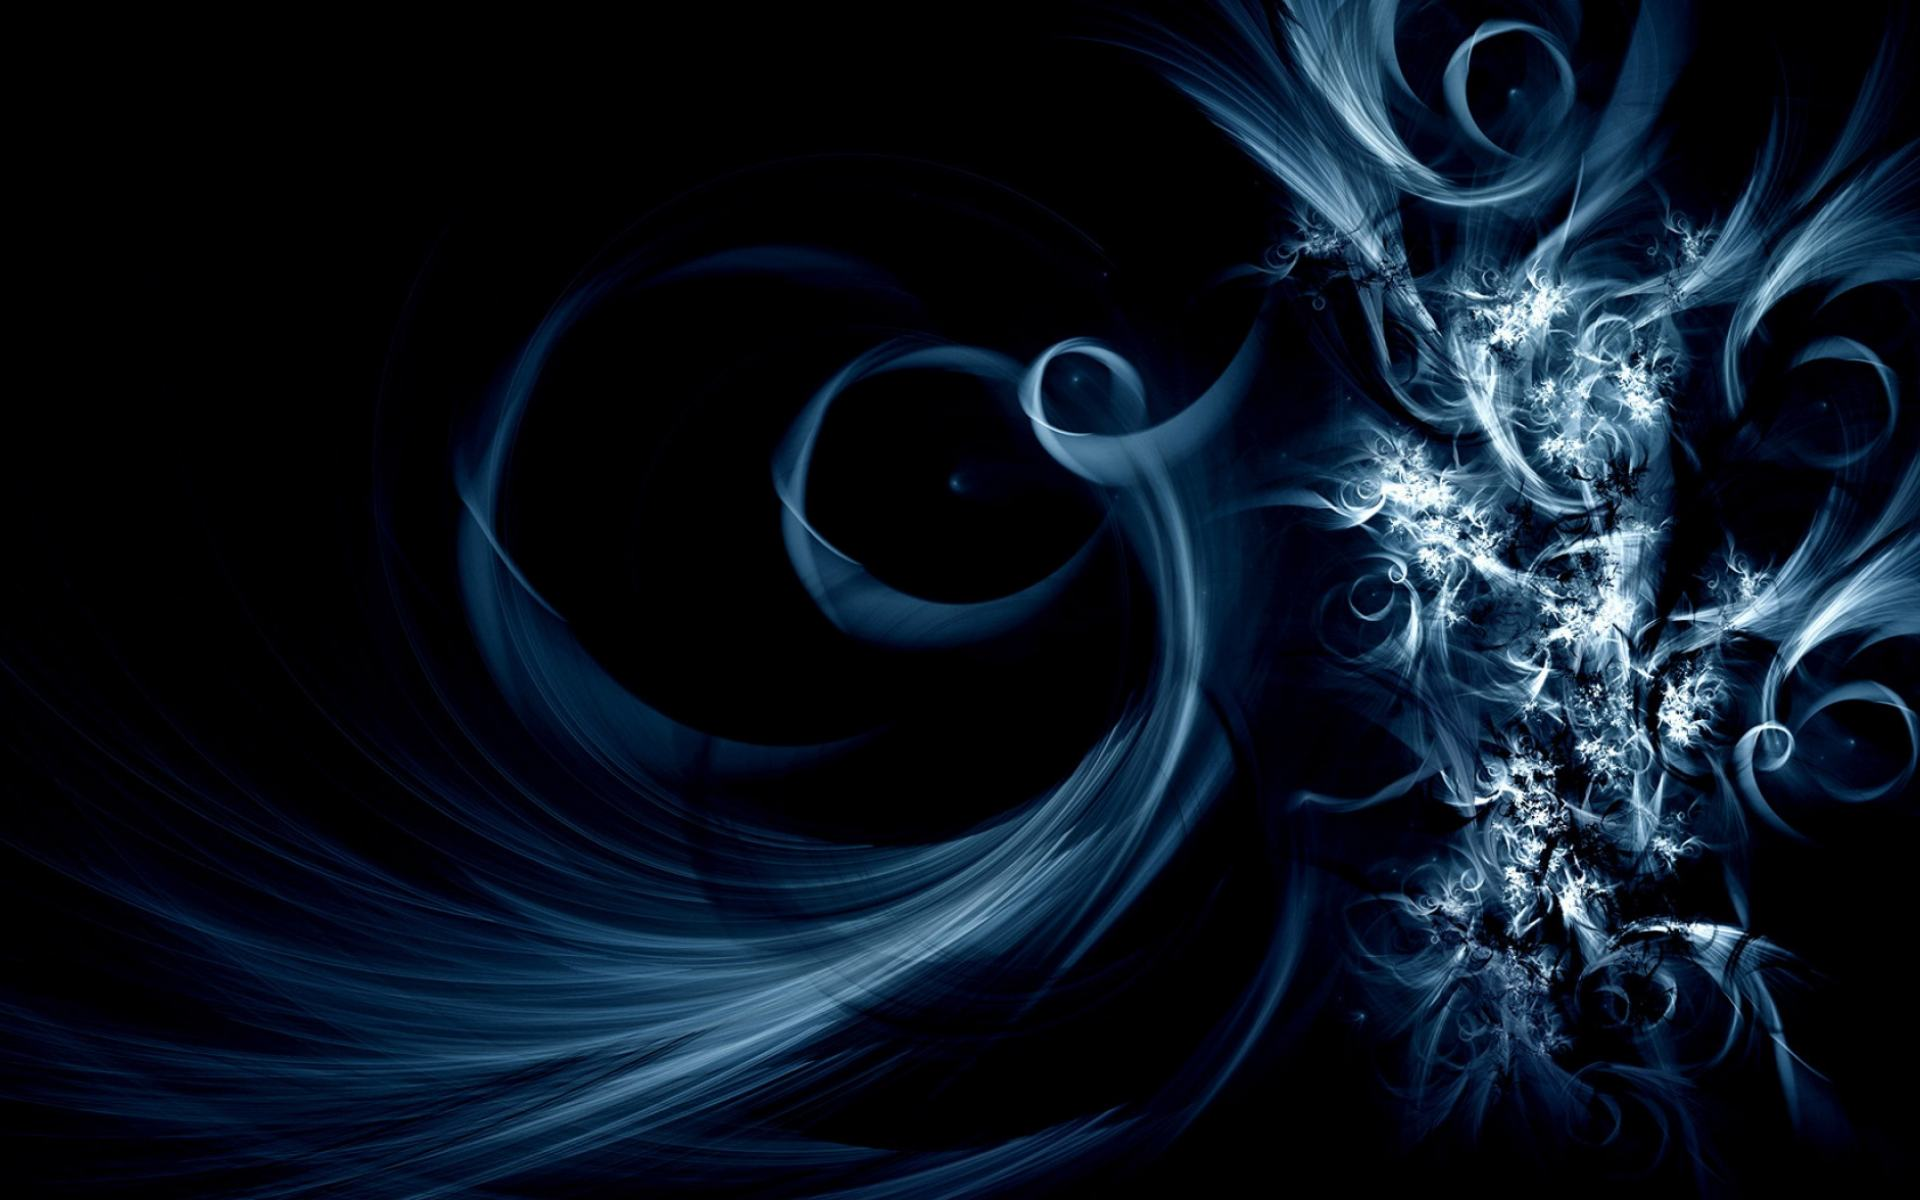 Обои Swirly Blue Abstract 1920x1200